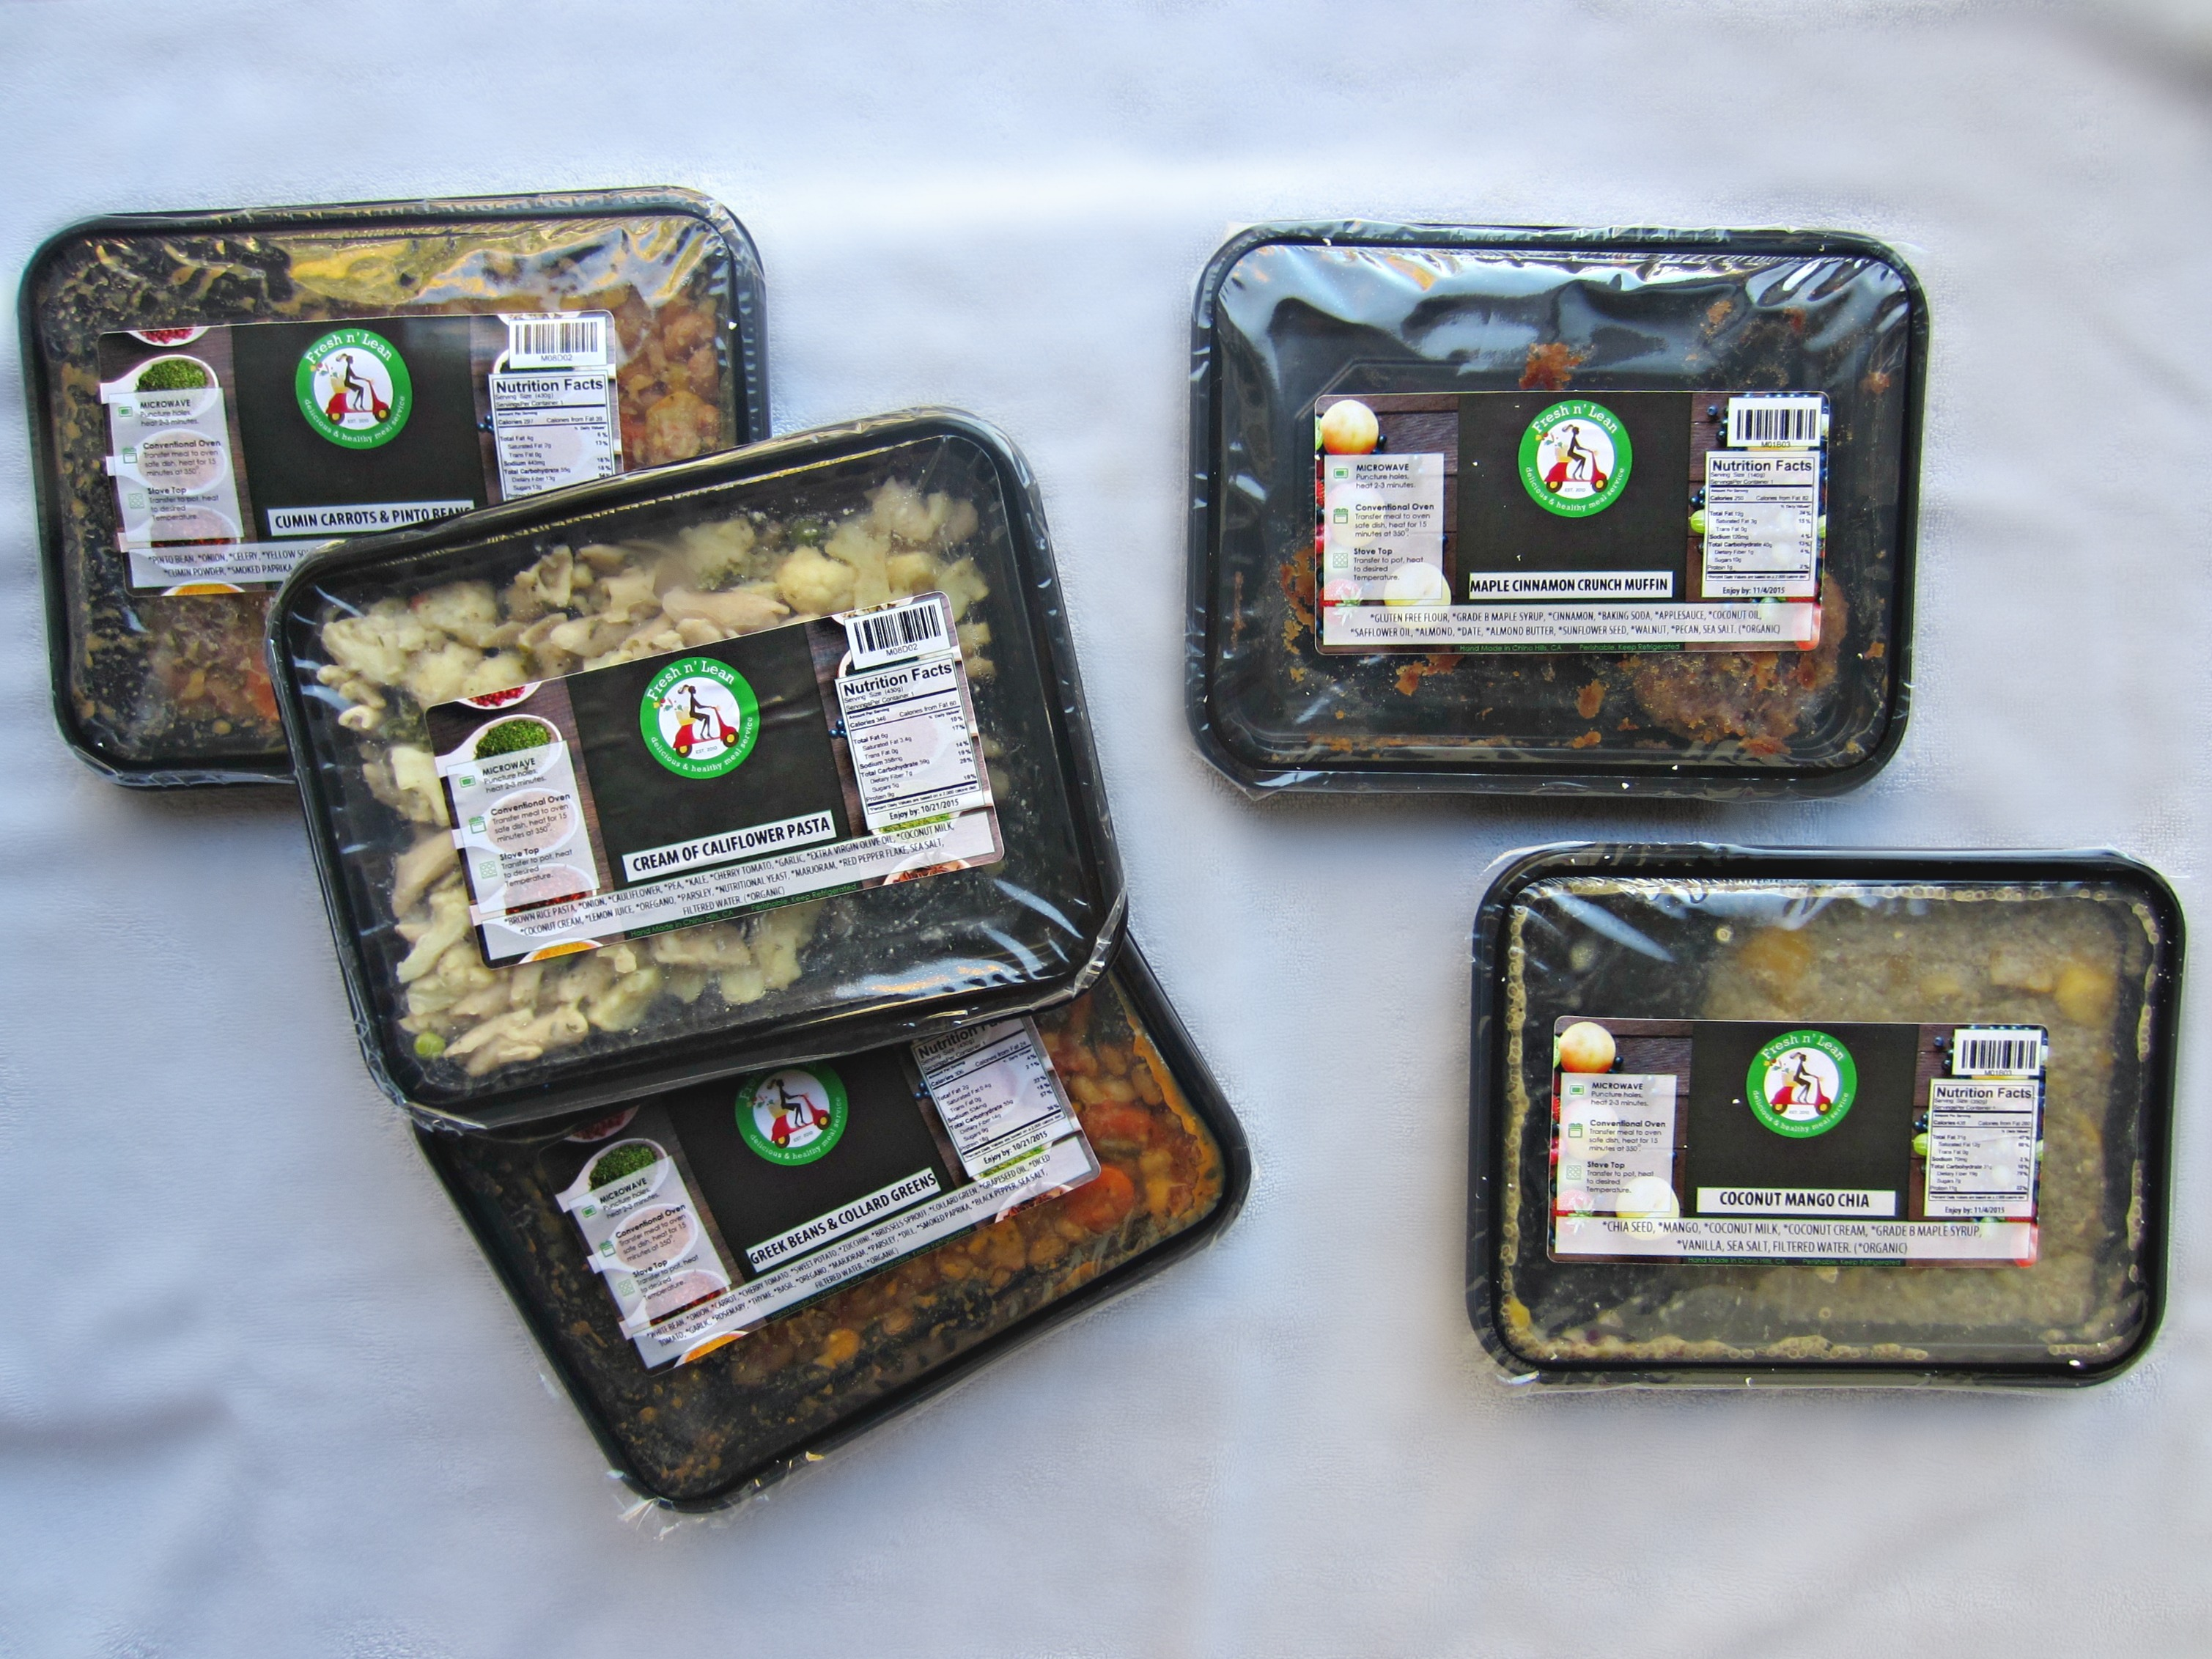 fresh 'n lean organic meal delivery service